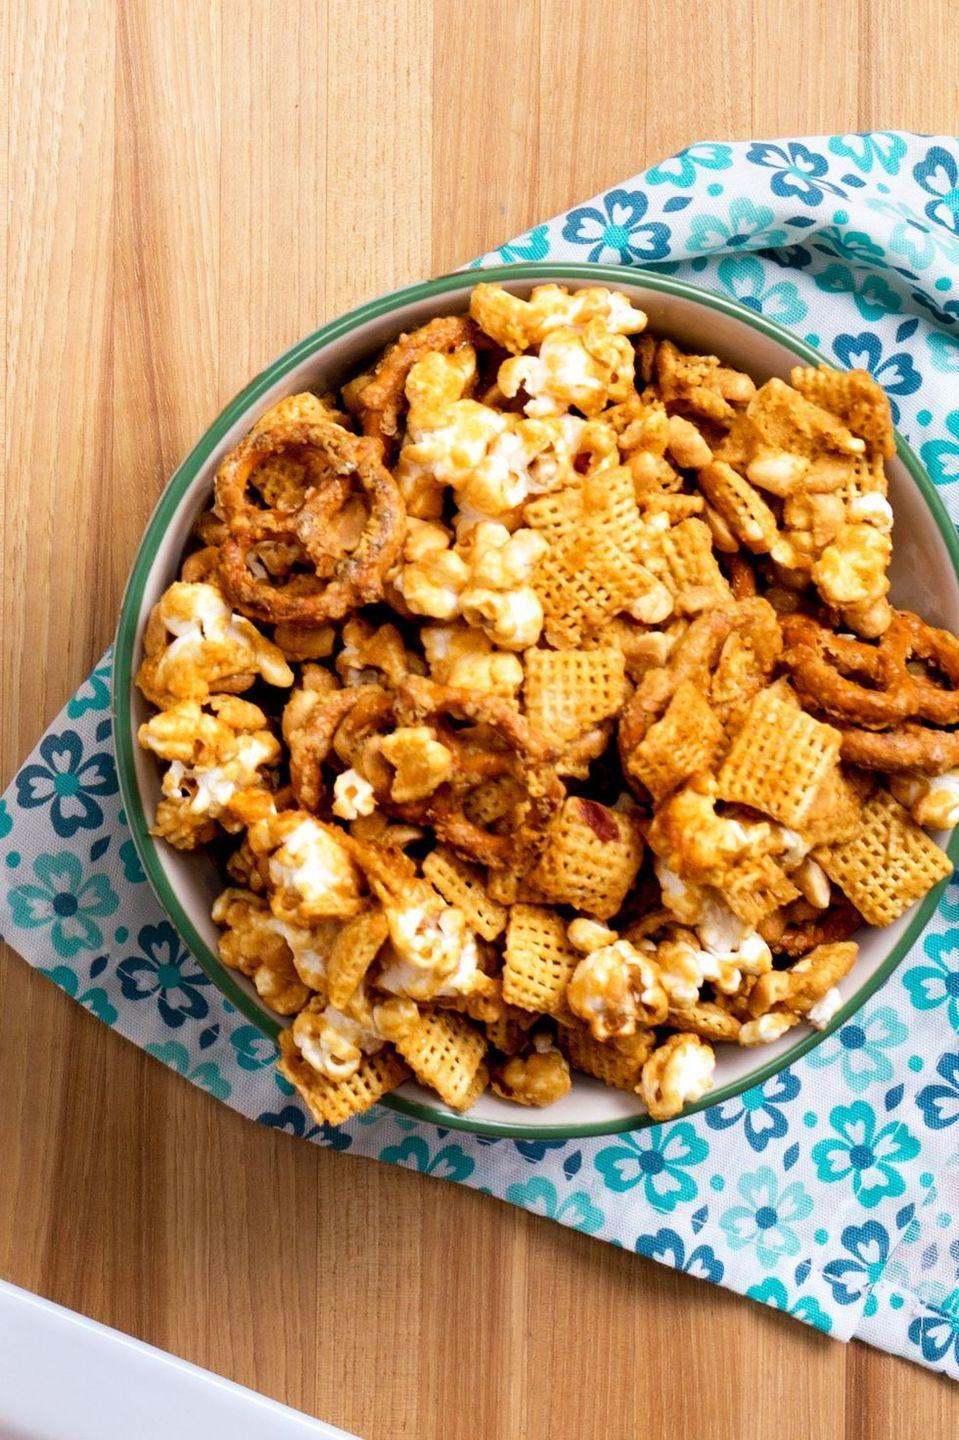 """<p>Sweet and salty snacks, like this party mix, are perfect for munching on throughout the day. It's a great way to stay satisfied until the turkey is ready. </p><p><a href=""""https://www.thepioneerwoman.com/food-cooking/recipes/a32257596/mercantile-snack-mix-recipe/"""" rel=""""nofollow noopener"""" target=""""_blank"""" data-ylk=""""slk:Get Ree's recipe."""" class=""""link rapid-noclick-resp""""><strong>Get Ree's recipe.</strong></a></p>"""